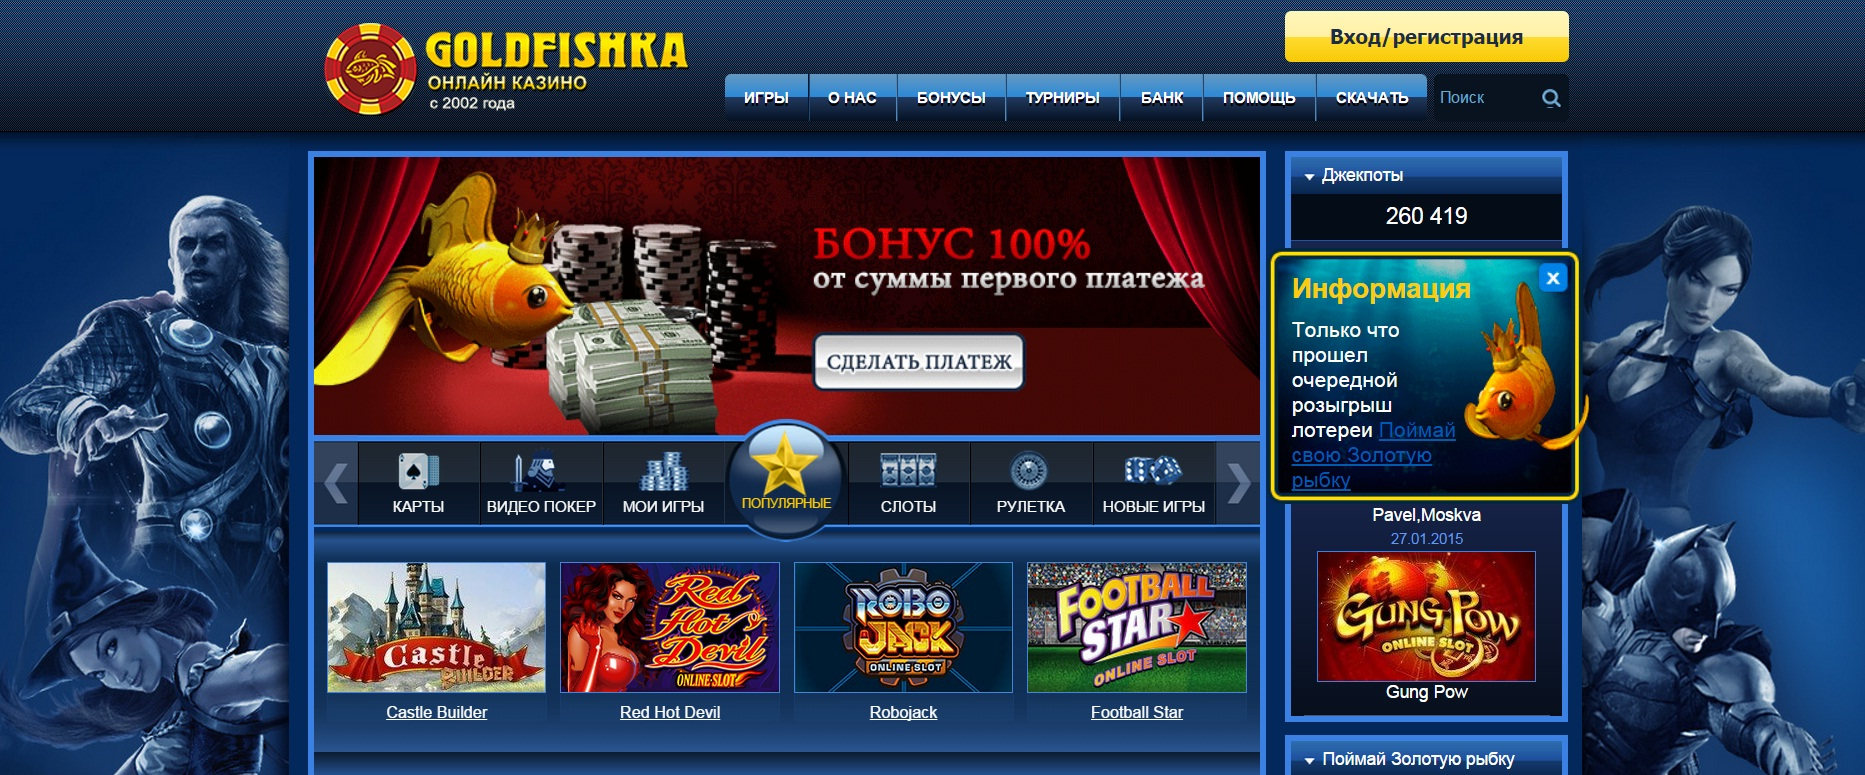 Скачать betfair poker promotions